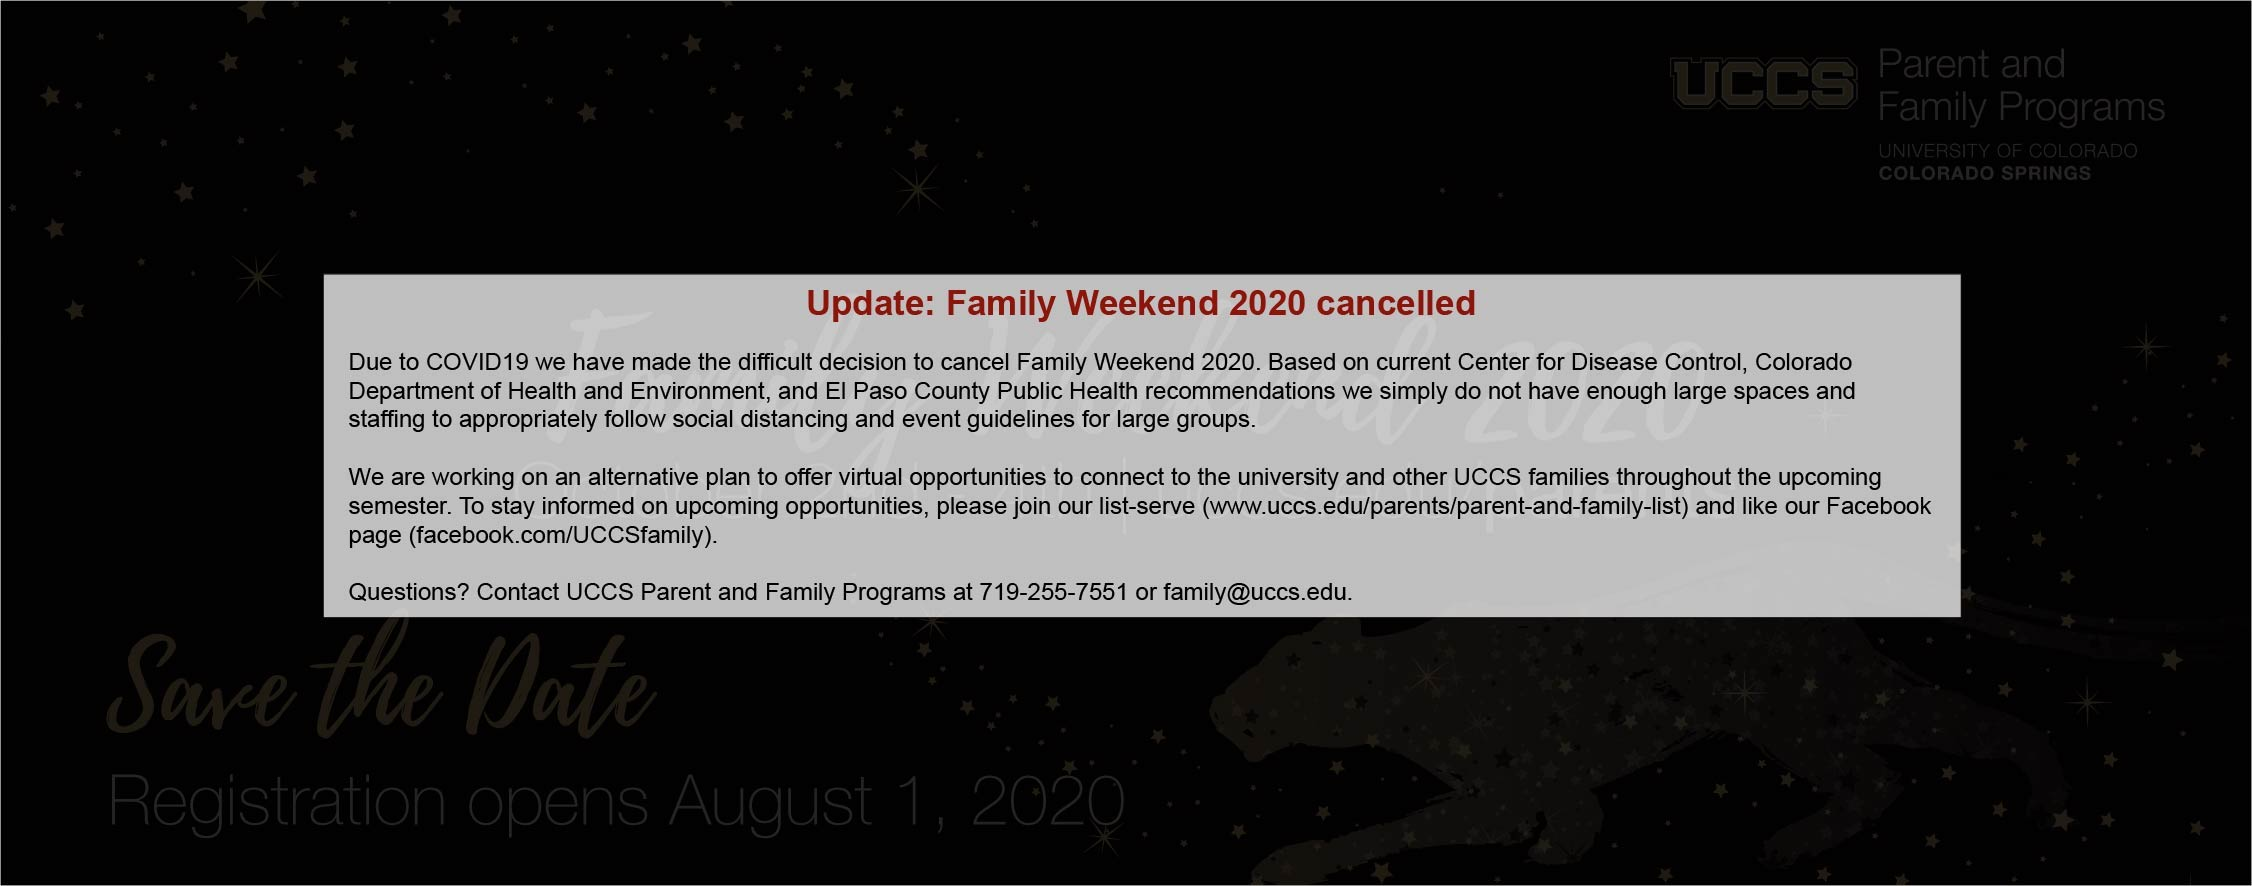 Due to COVID19 and health department guidelines for large events, Family Weekend 2020 has been cancelled. Questions? Call 719-255-7551.